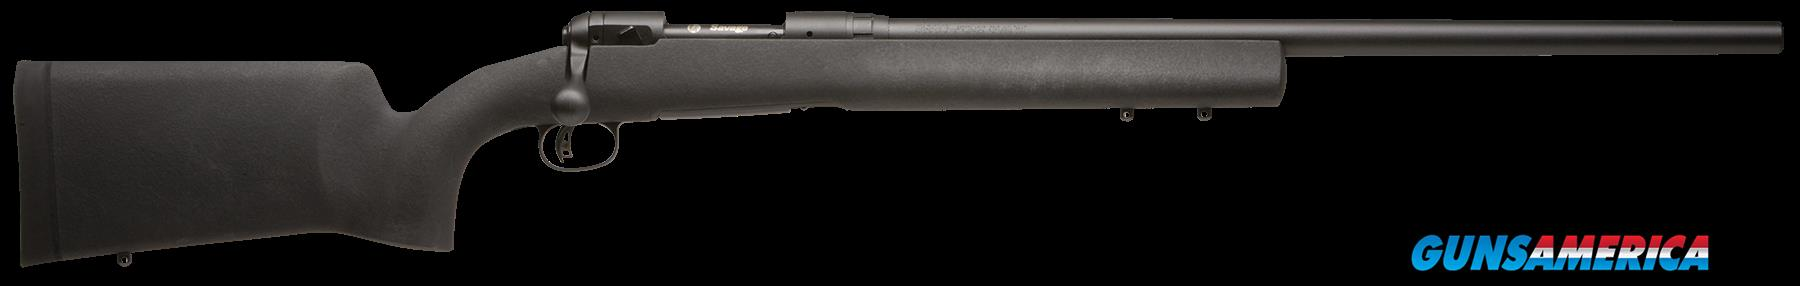 "Savage 18139 10/110 FCP Law Enforcement Bolt 308 Winchester/7.62 NATO 24"" 4+1 HS Precision  Guns > Rifles > S Misc Rifles"